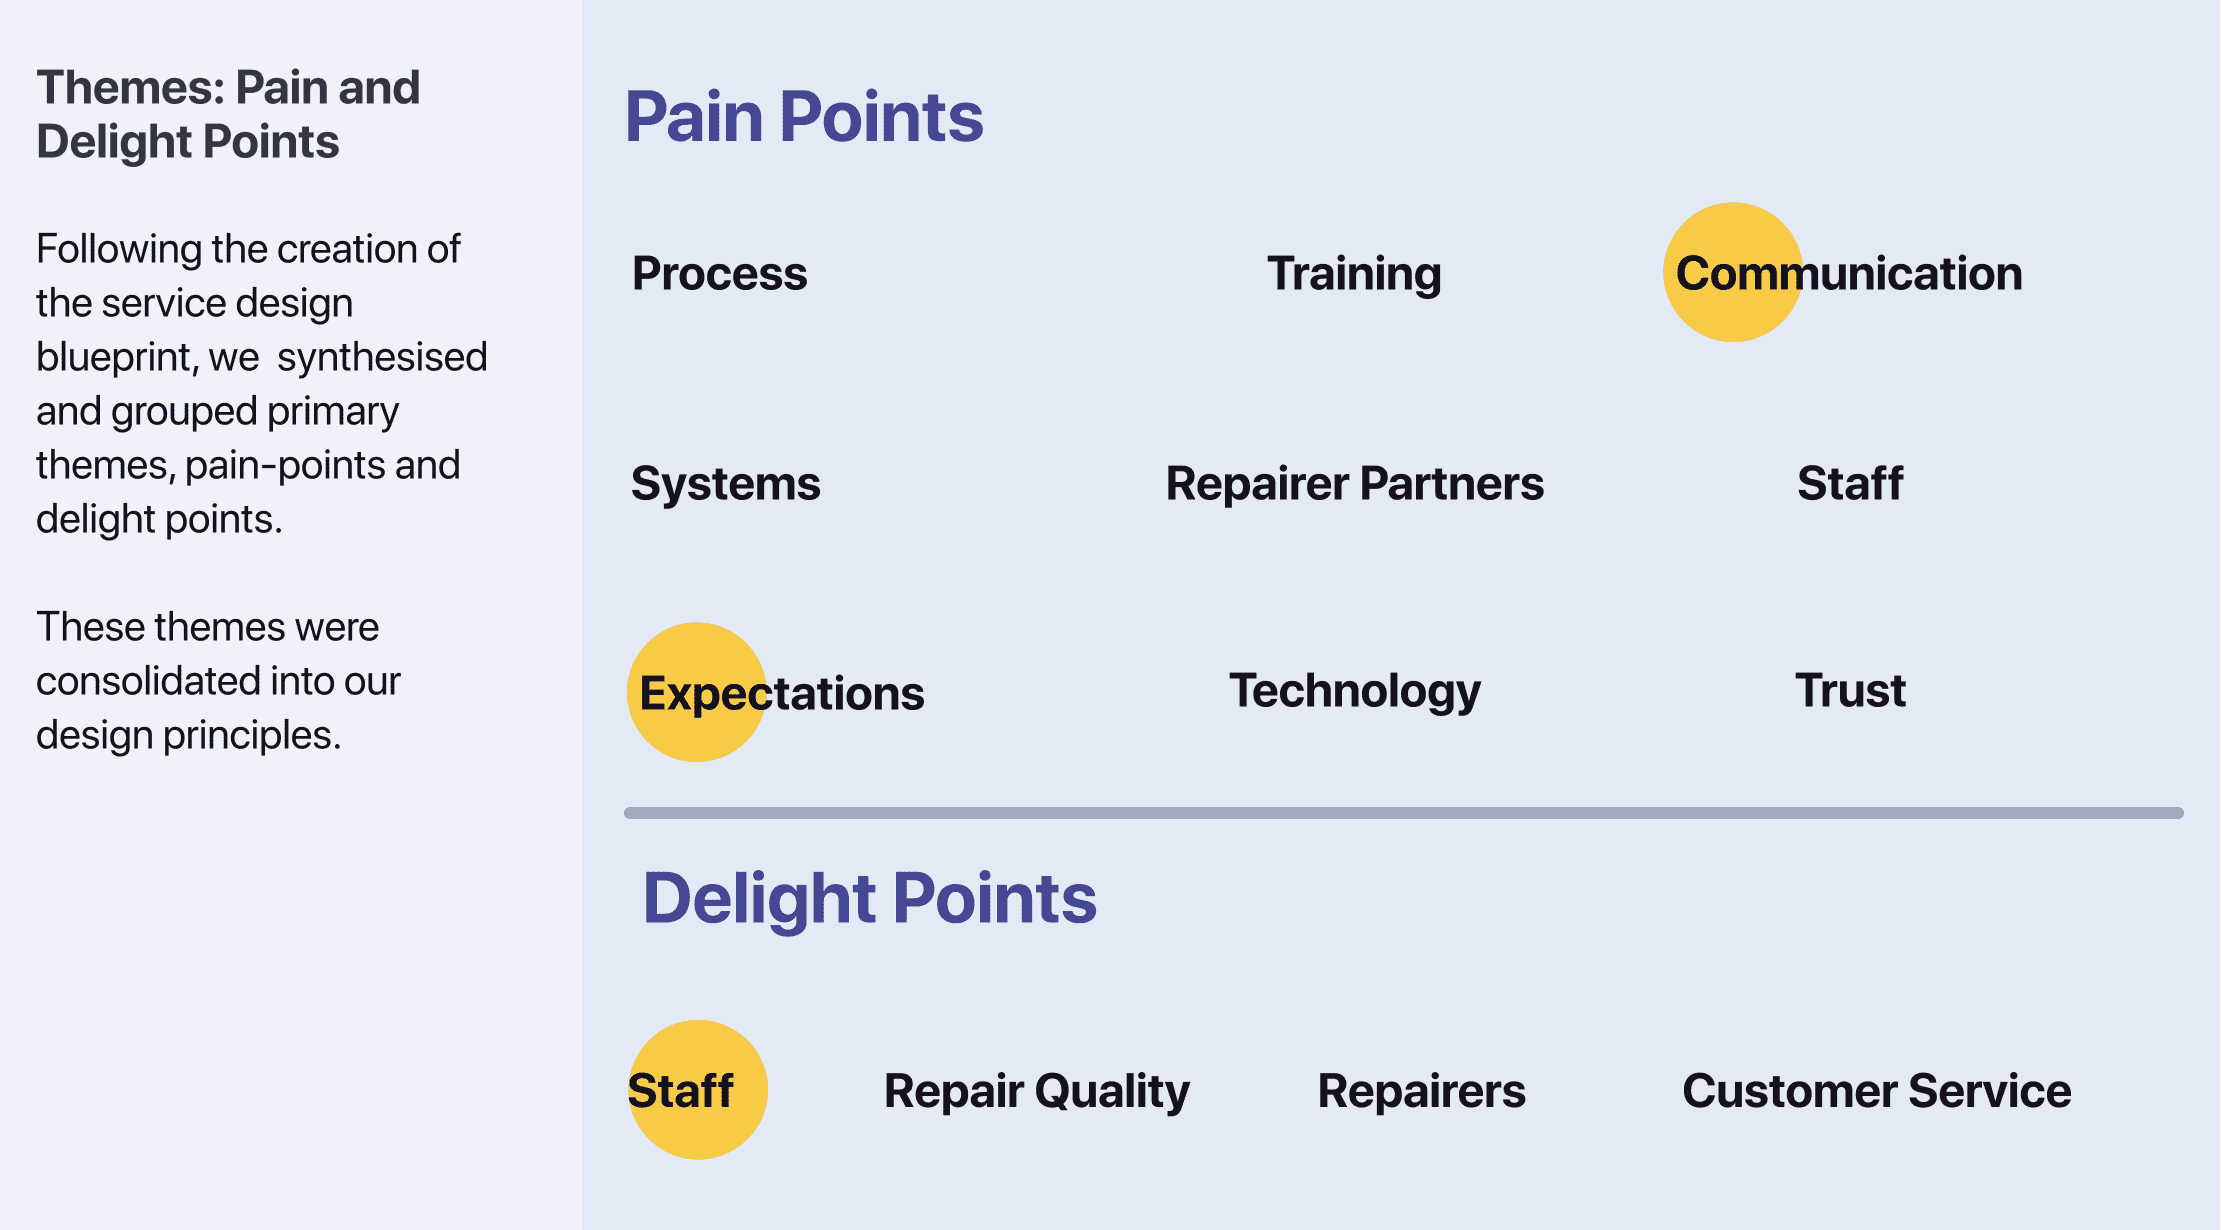 We identified a range of pain and delight points; with the primary pain points being communication and expectations, whereas staff are the primary delight point.